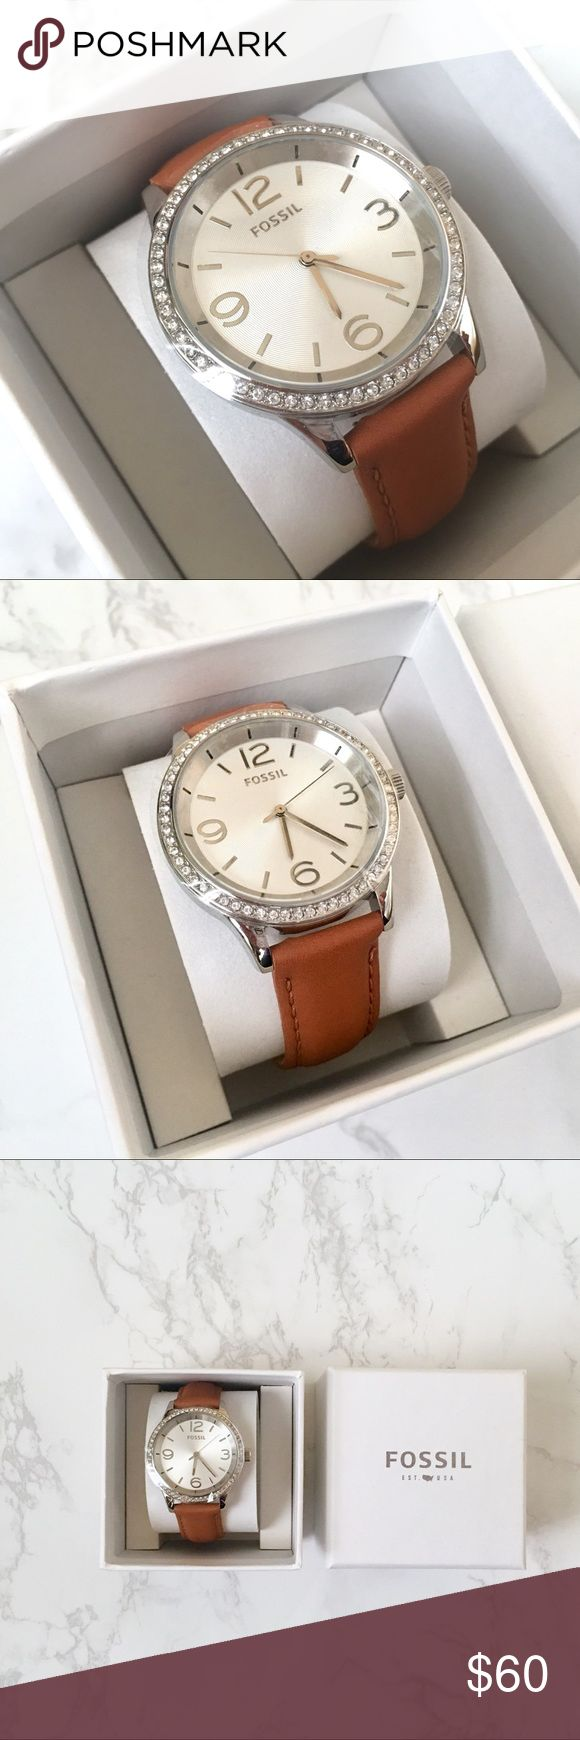 FOSSIL Watch with Leather band Brand New Fossil watch with tan leather band and rhinestones encrusted on the face. Received as a gift but never worn or taken out of the box. Make me an offer! I will never decline. :) Accessories Watches